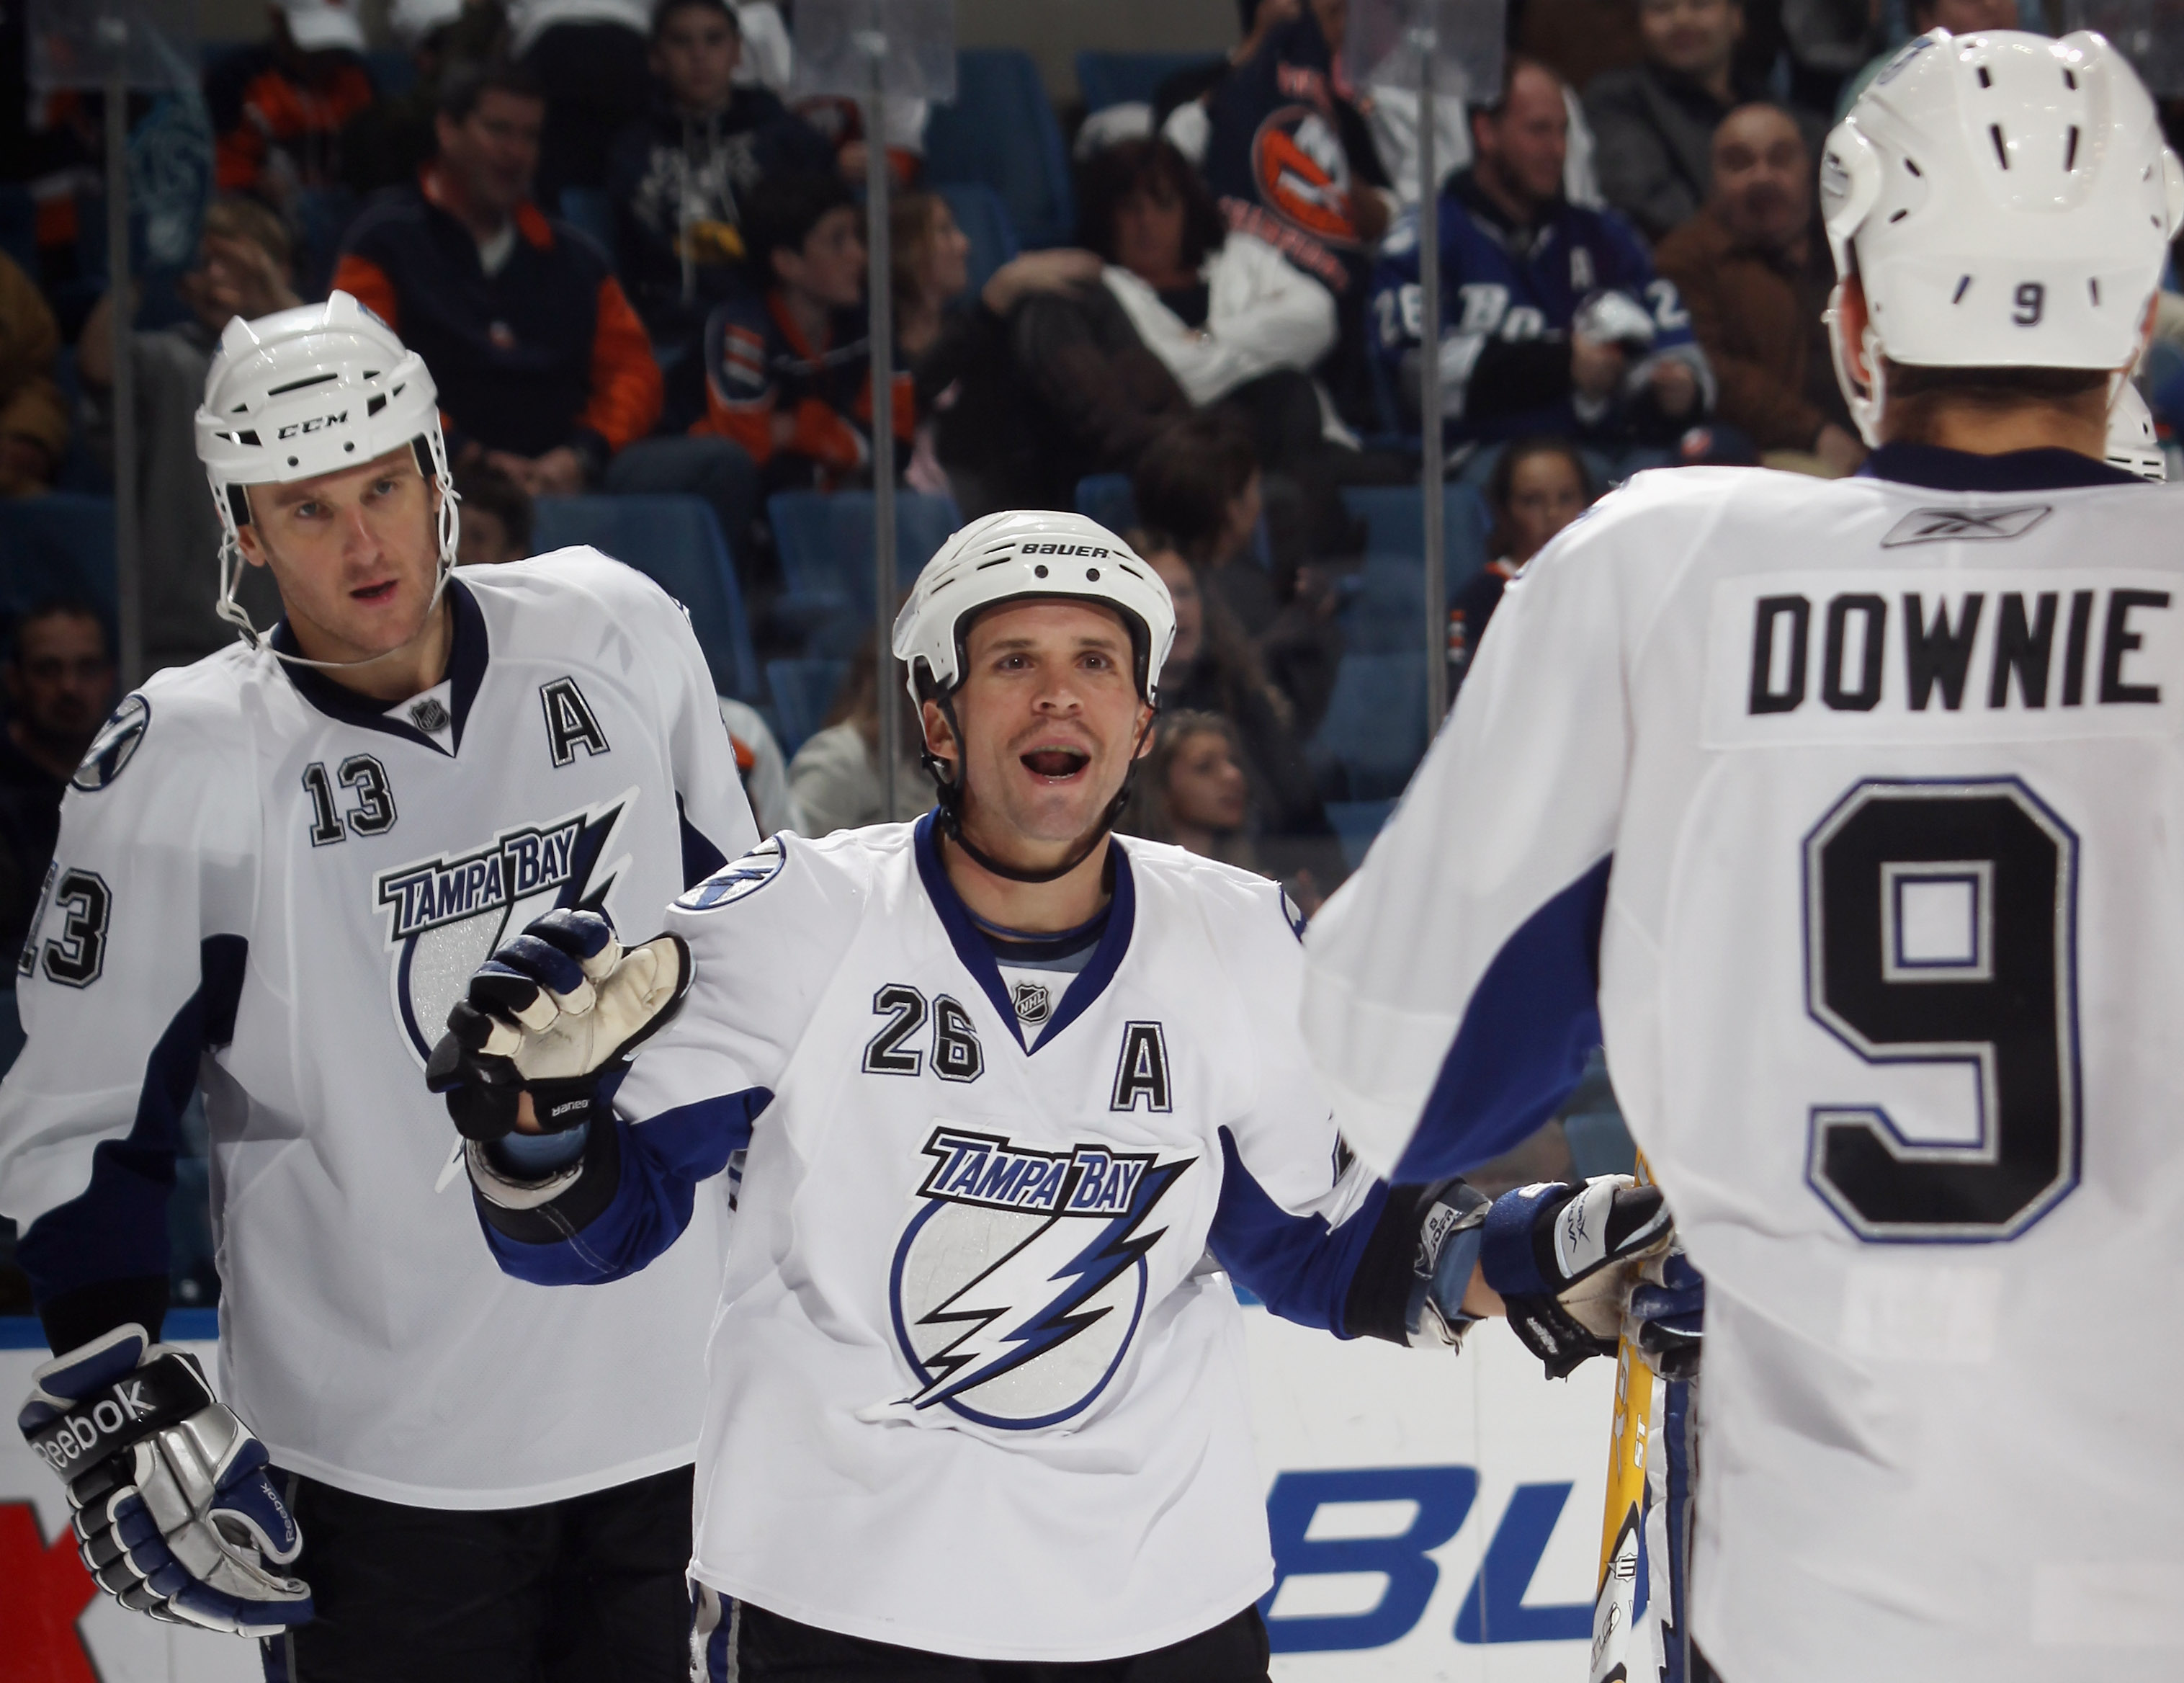 UNIONDALE, NY - NOVEMBER 17:  Martin St. Louis #26 of the Tampa Bay Lightning scores at 18:31 of the third period aganst the New York Islanders at the Nassau Coliseum on November 17, 2010 in Uniondale, New York. The Lightning defeated the Islanders 4-2.